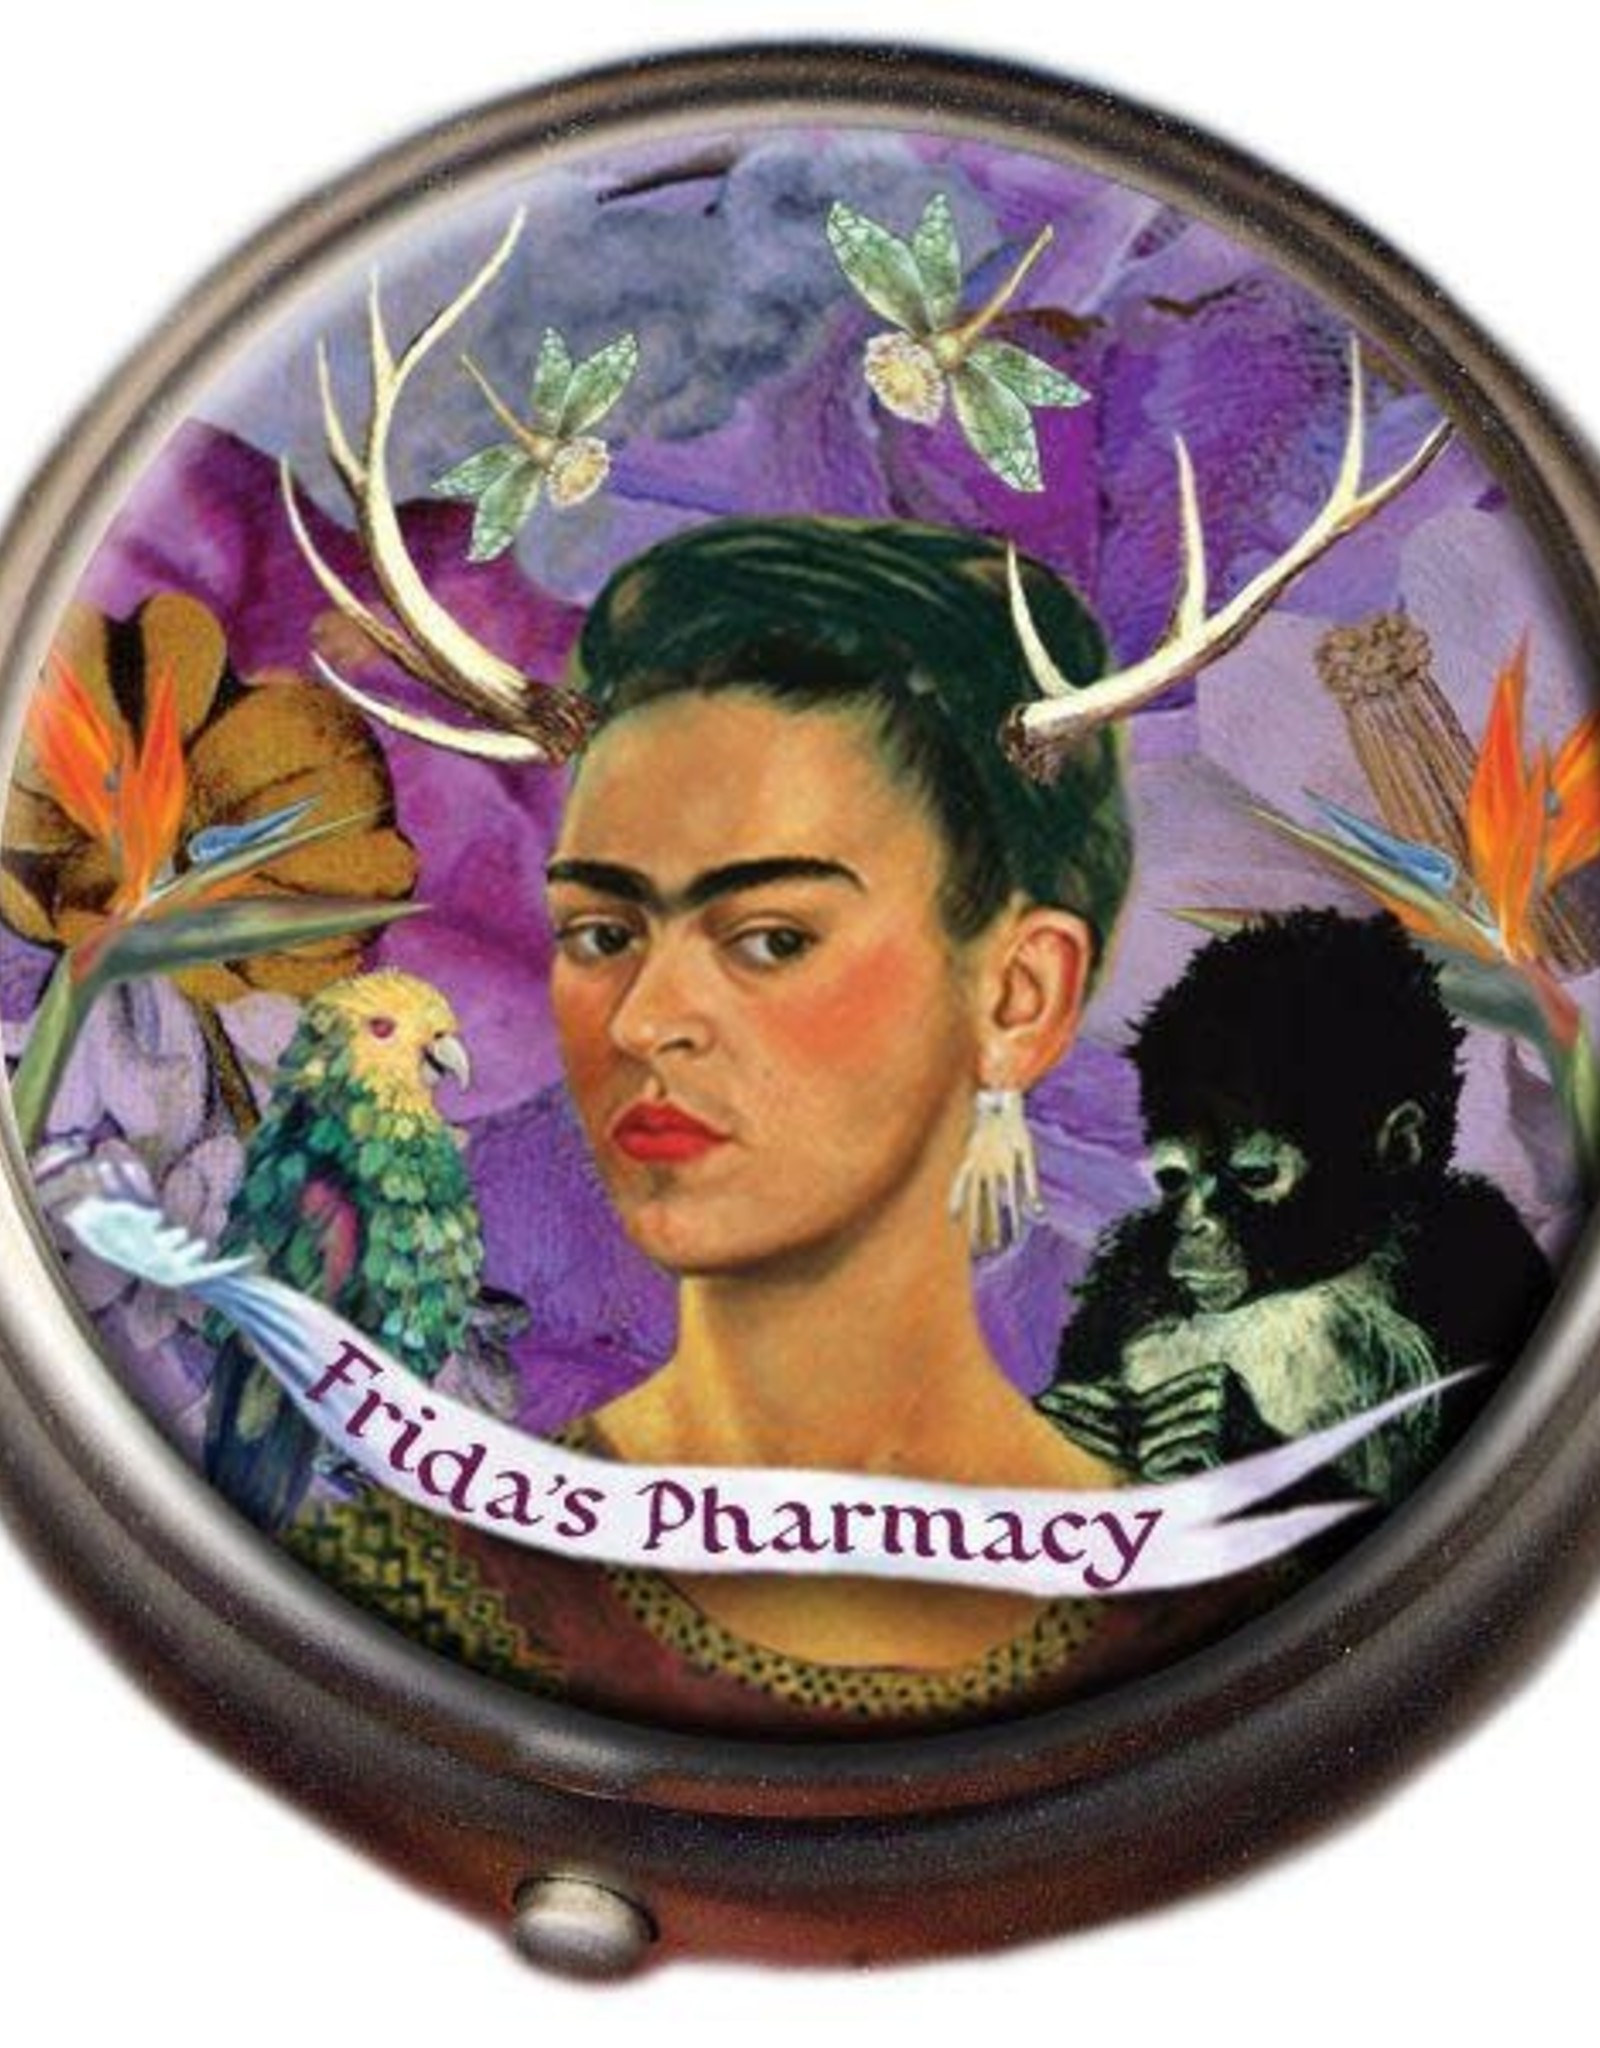 Pillbox - Frida's Pharmacy